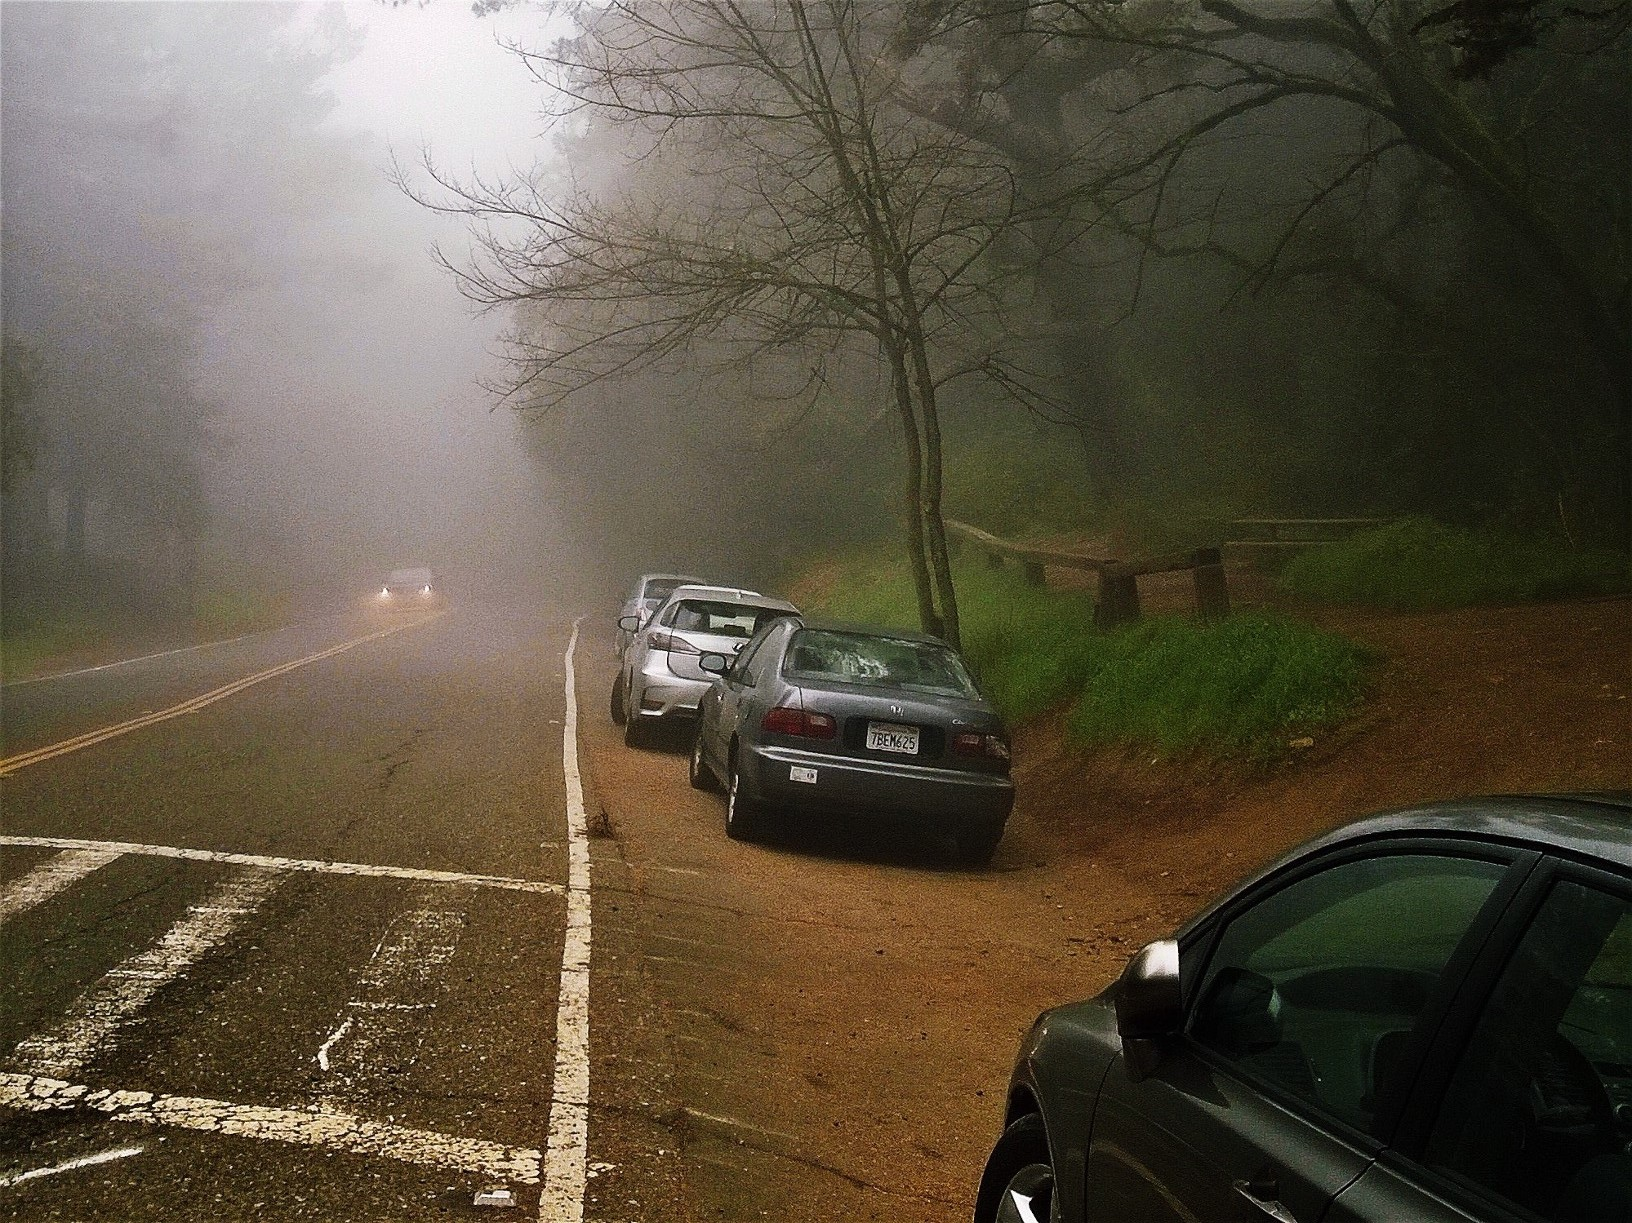 Three trailheads at 10601 Skyline Blvd, Oakland - Joaquin Miller Park